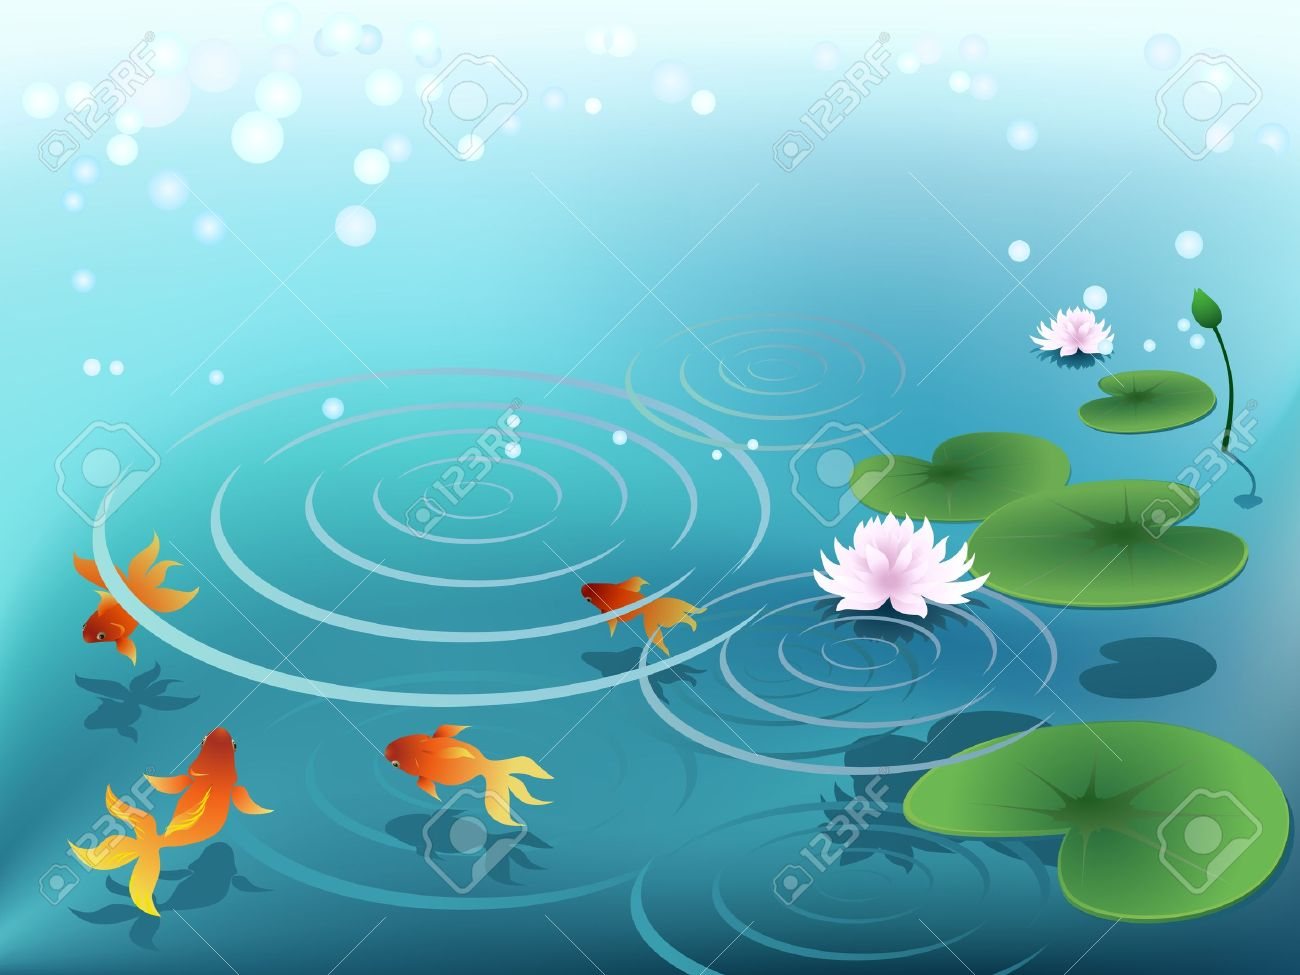 Pond with goldfish Stock Vector - 13548082